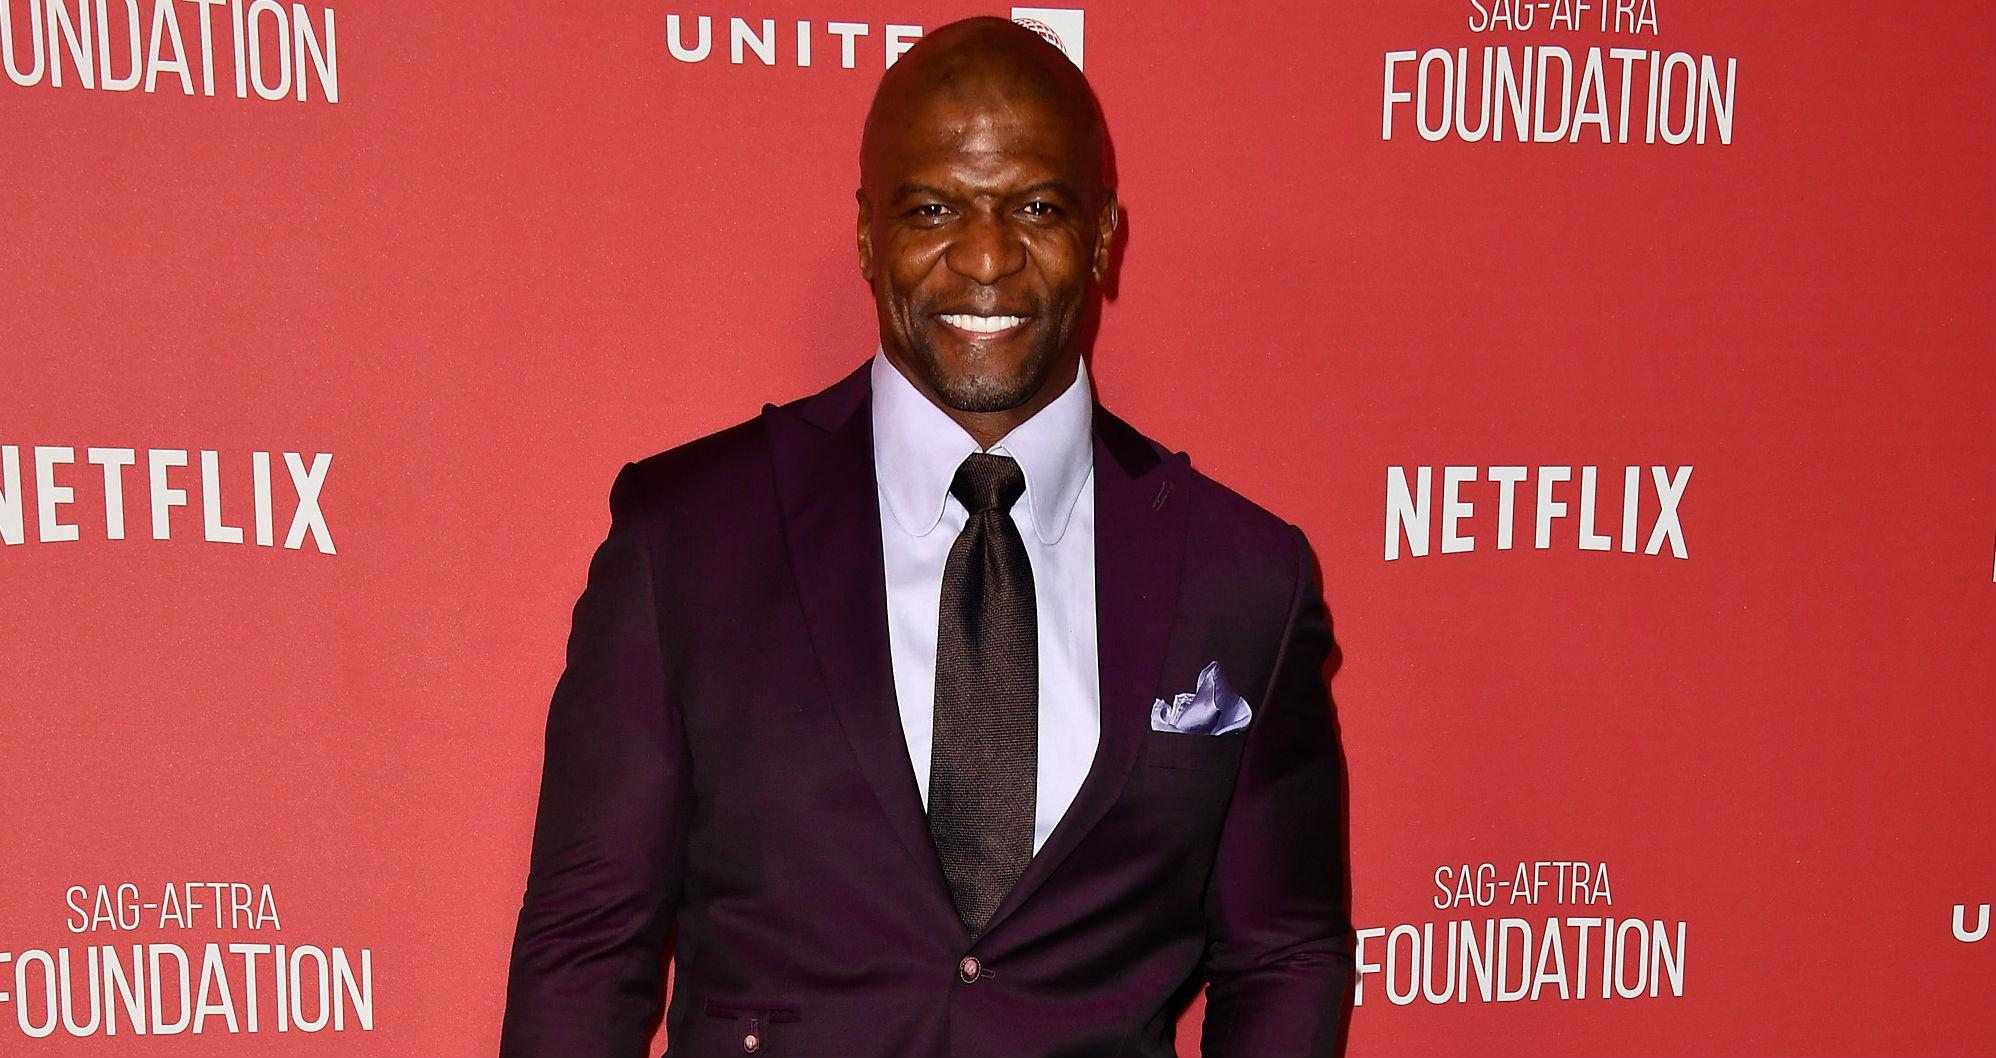 Terry Crews Names Alleged Abuser As WME Executive Adam Venit